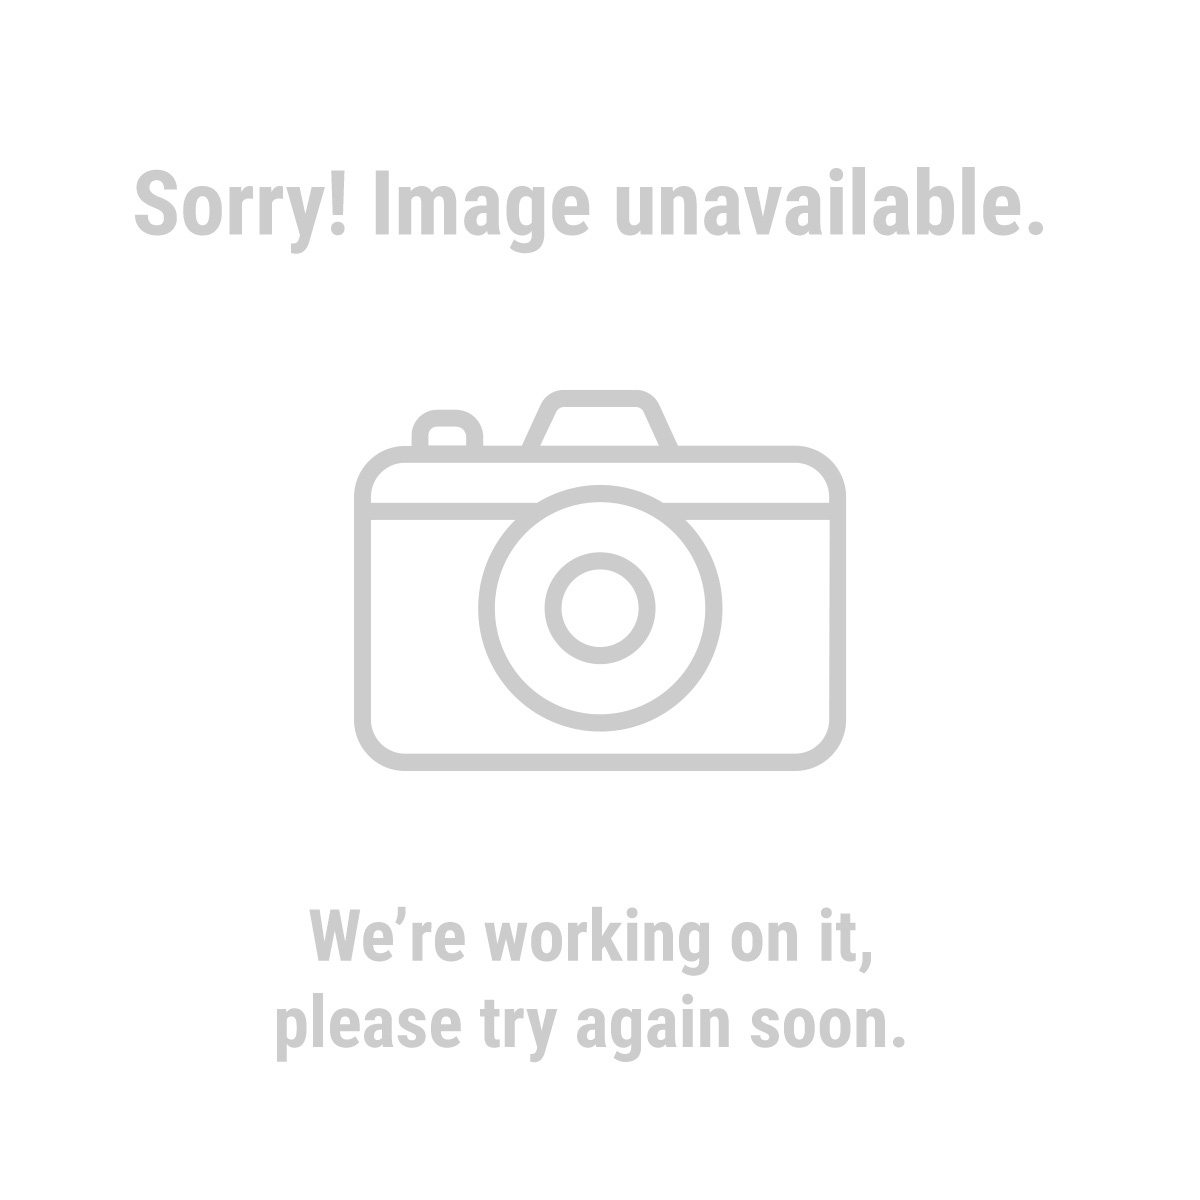 U.S. General Pro 62500 44 in. 8 Drawer Glossy Red Roller Cabinet Top Chest